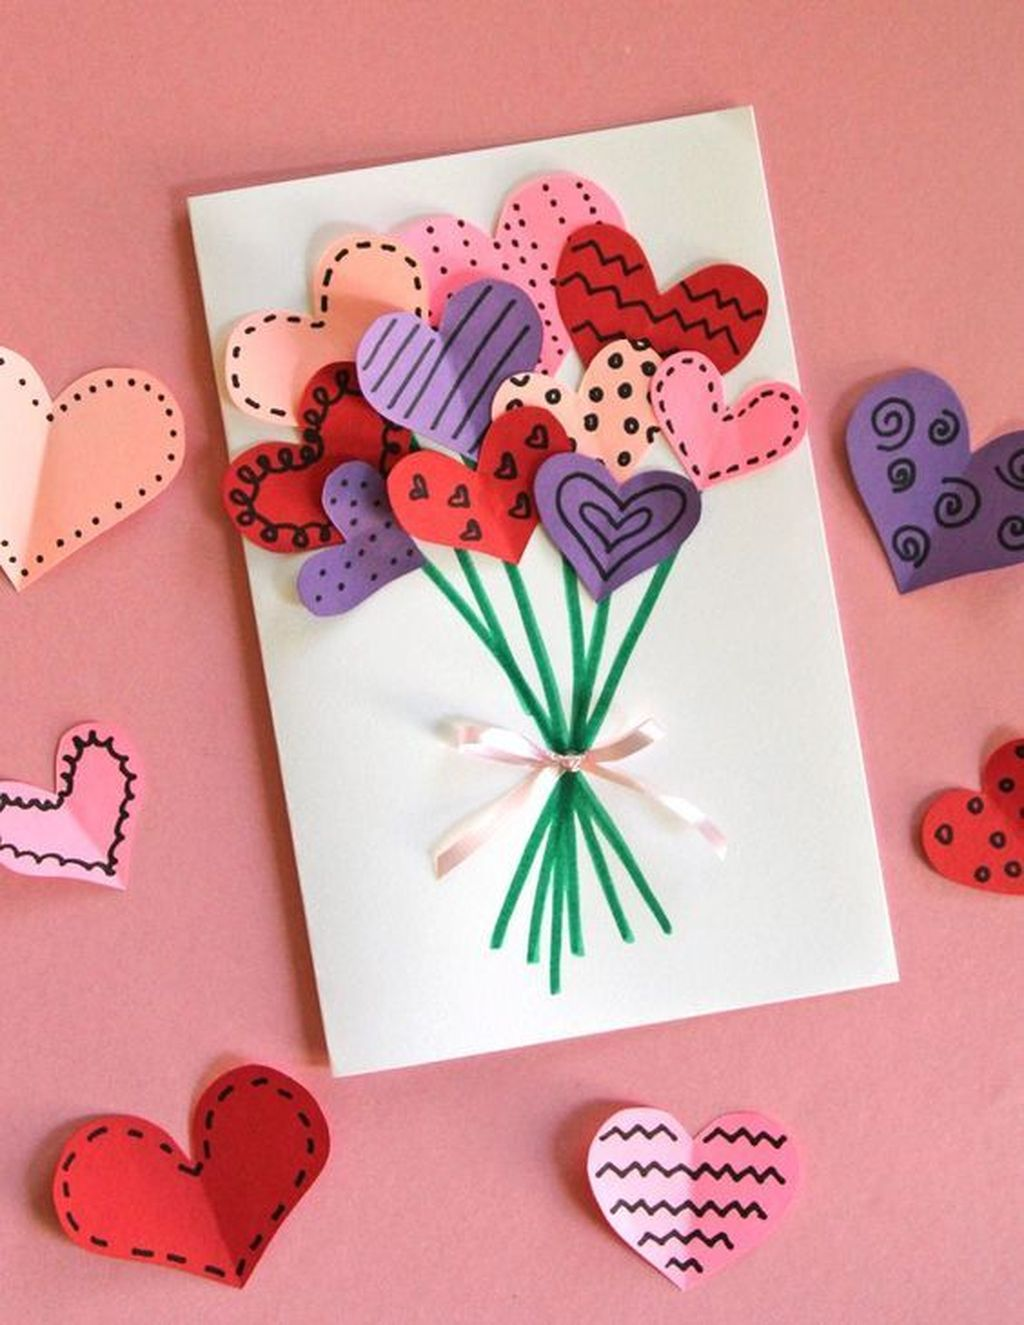 Inspiring Valentine Crafts Ideas For Your Home Decor 32